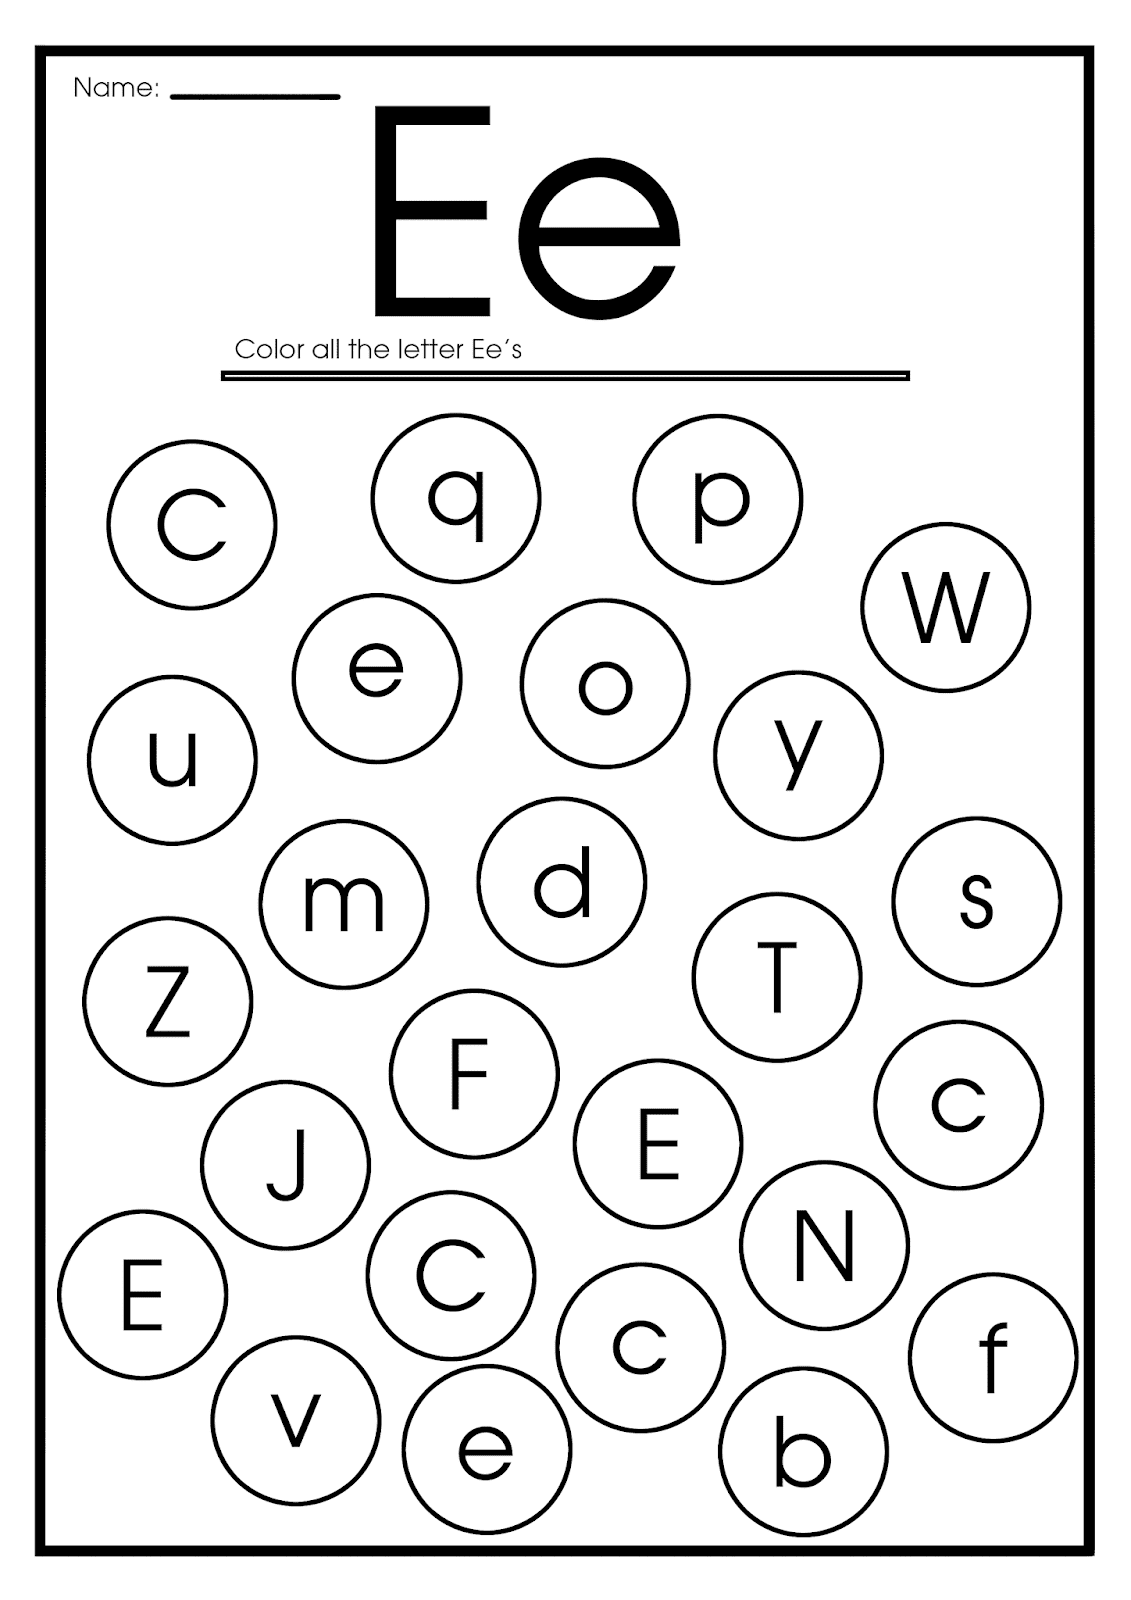 coloring letter e worksheets for toddlers letter e coloring worksheet for kids in preschool or letter toddlers for worksheets coloring e